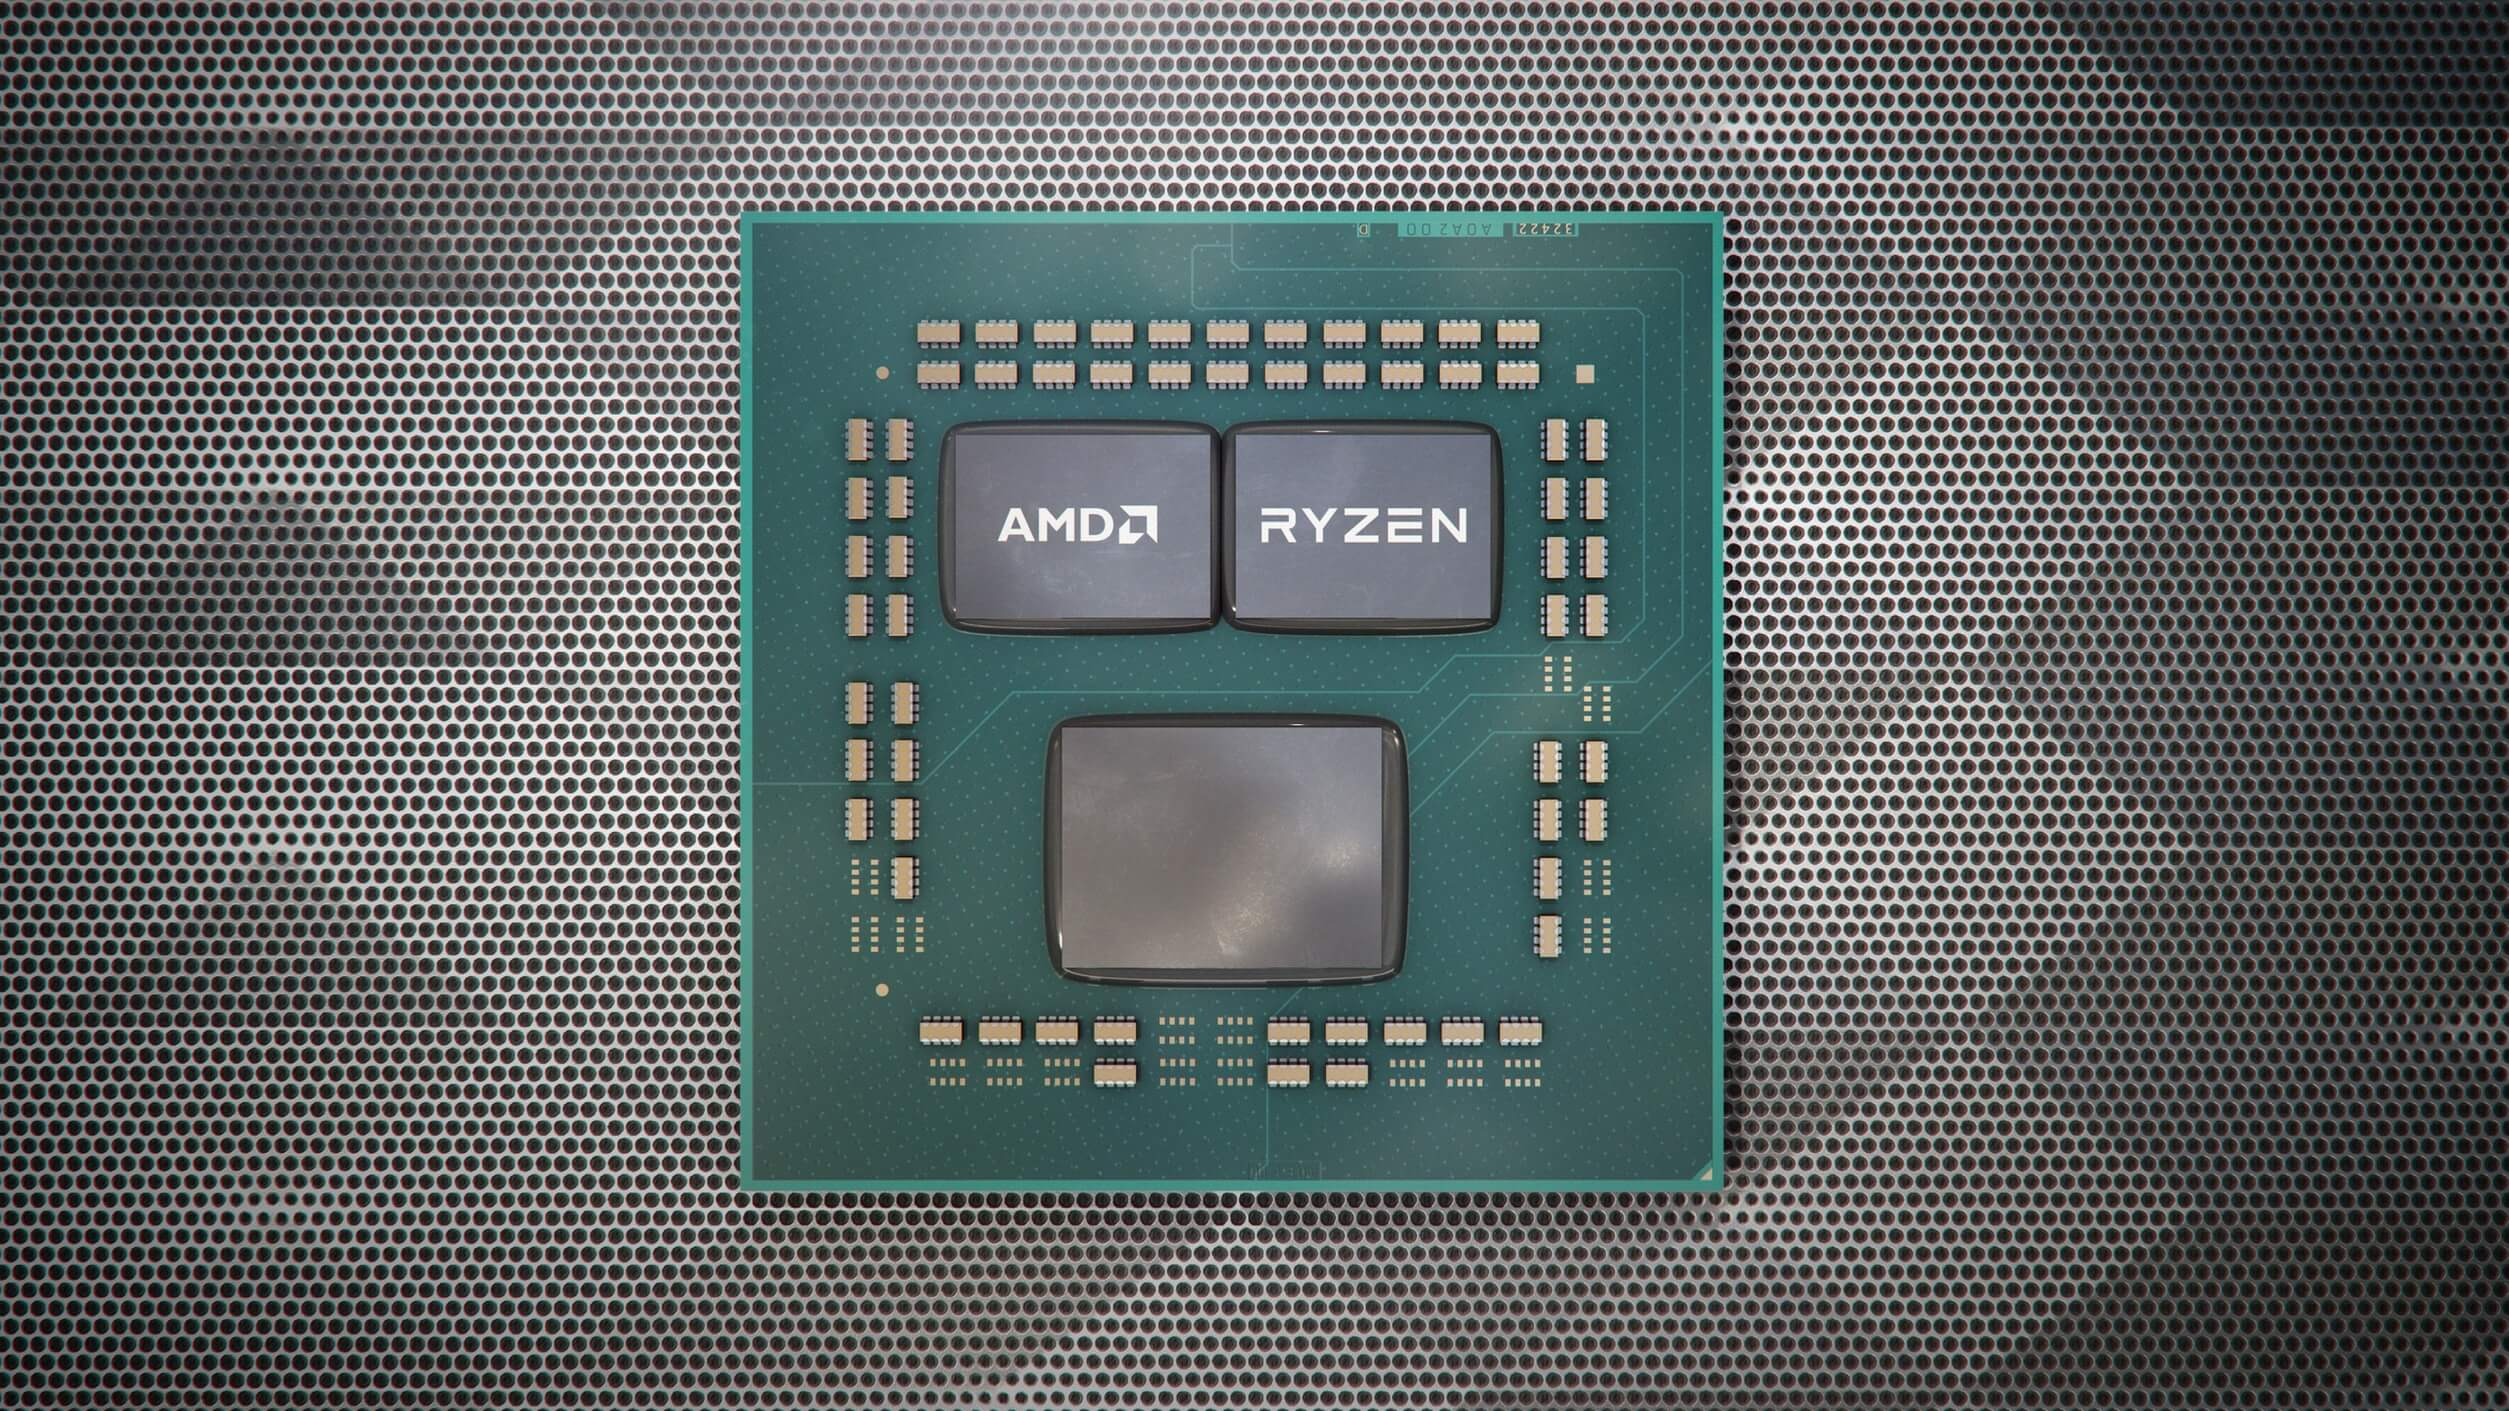 Amd Announces Ryzen 9 3900x Flagship Desktop Cpu Ryzen 7 3800x More